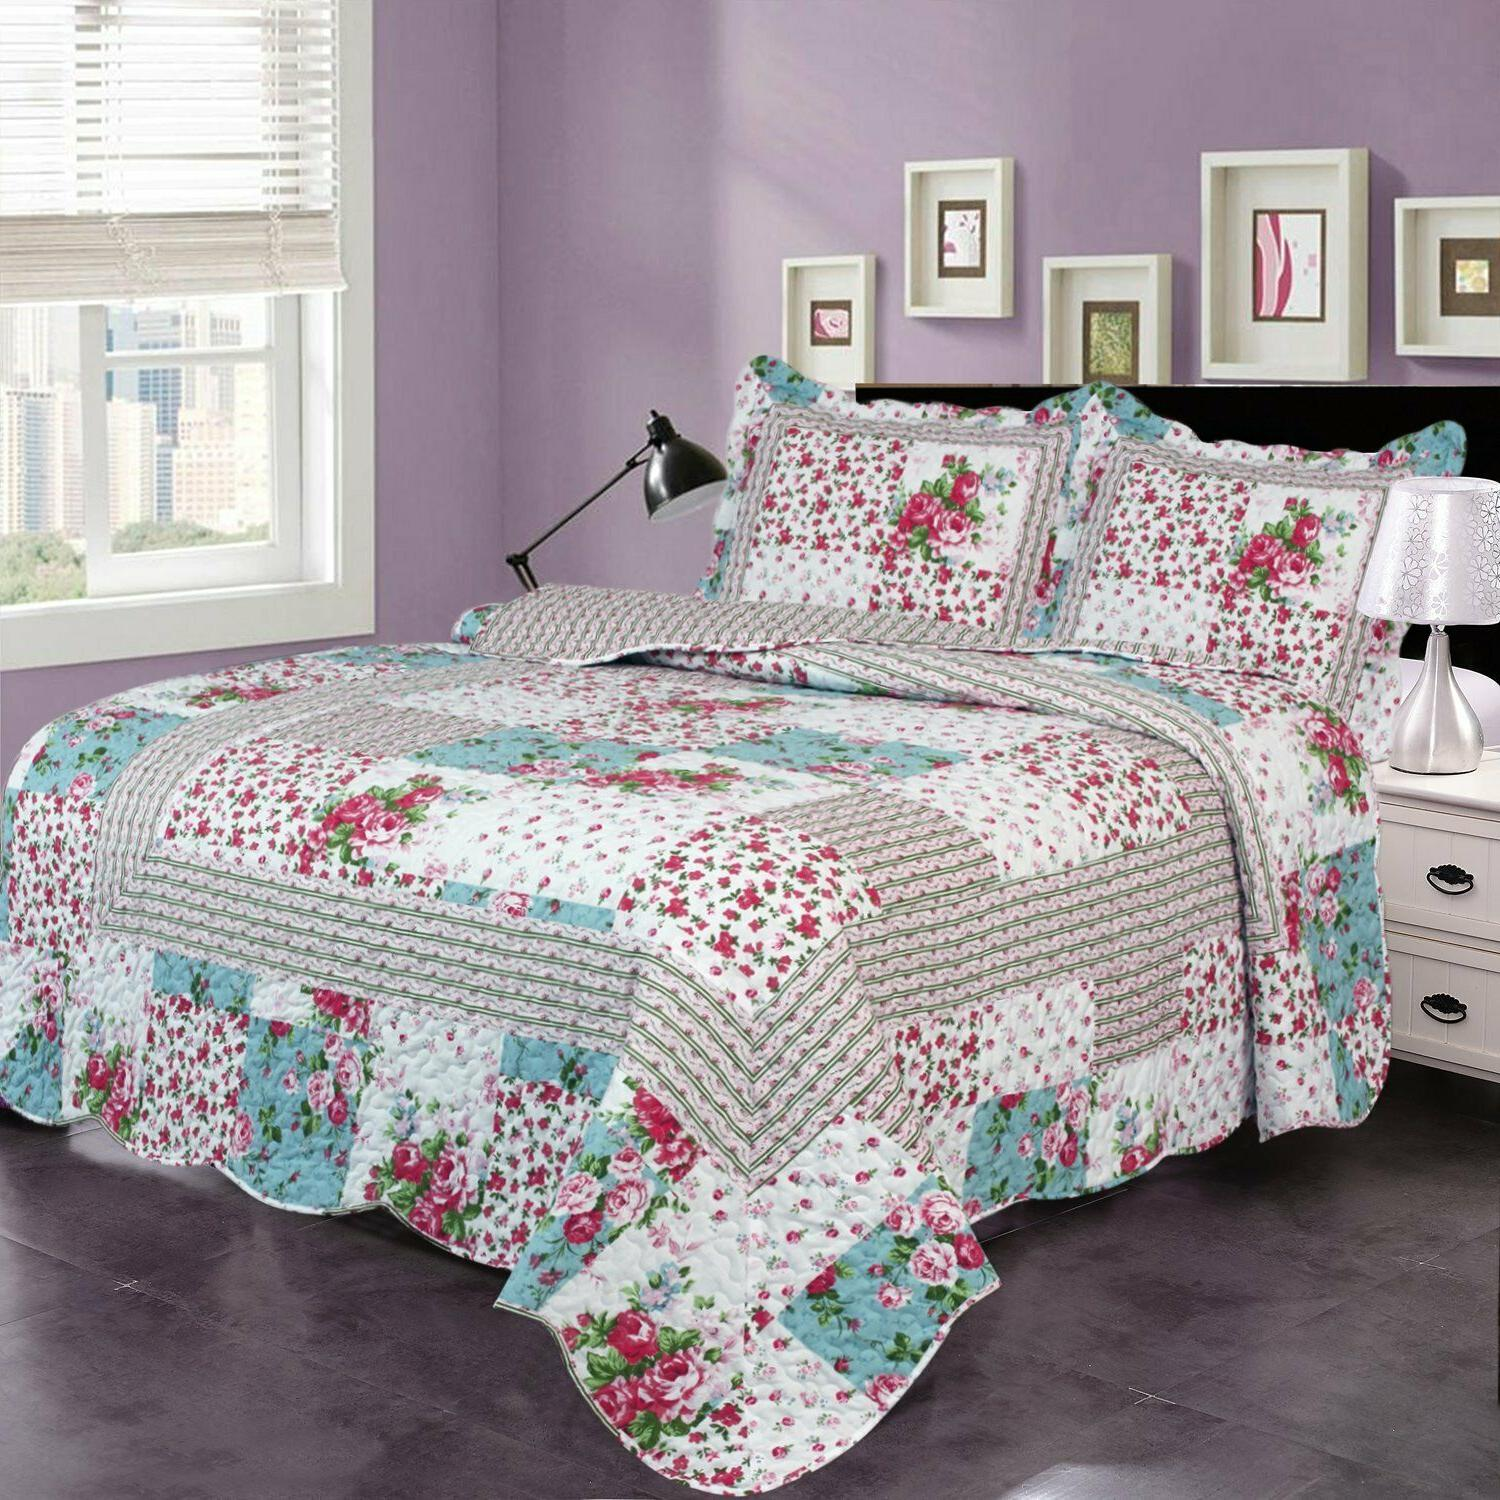 3-Piece Beach Theme Quilt Set with Bedspread and